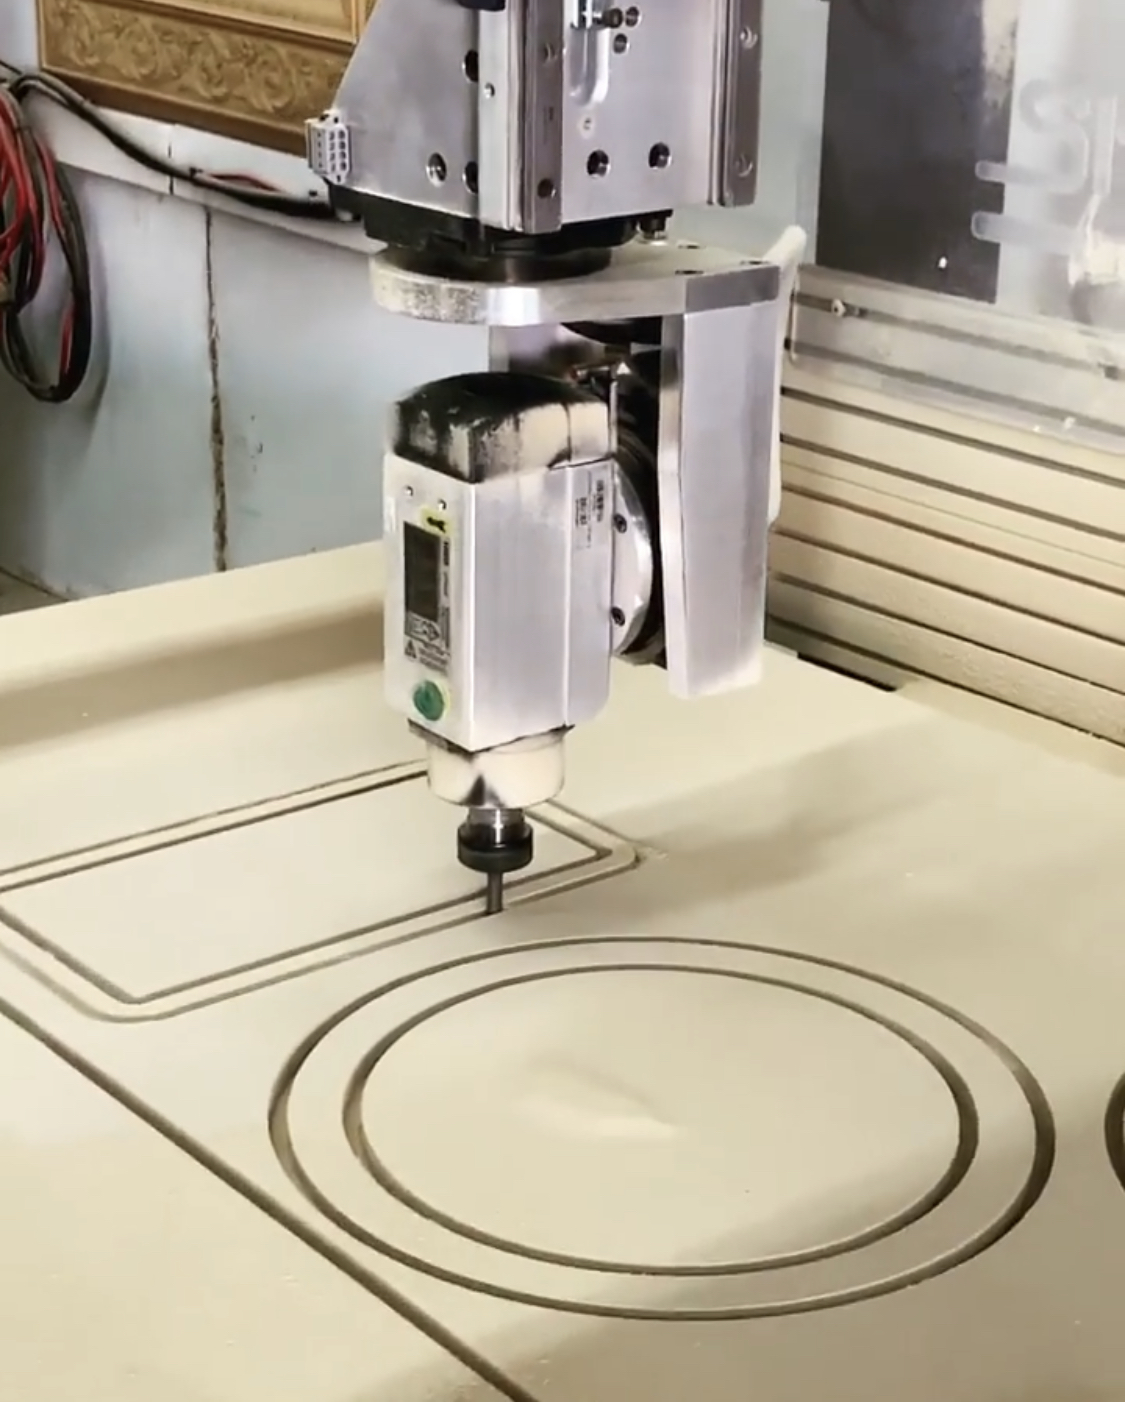 CNC: With our 3 Axis and 5 Axis CNC machines, as well as our CNC Mill and our Plasma Cam we can customize your project and cut precision parts in wood, acrylic, foam, steel, aluminum and brass, to name a few.